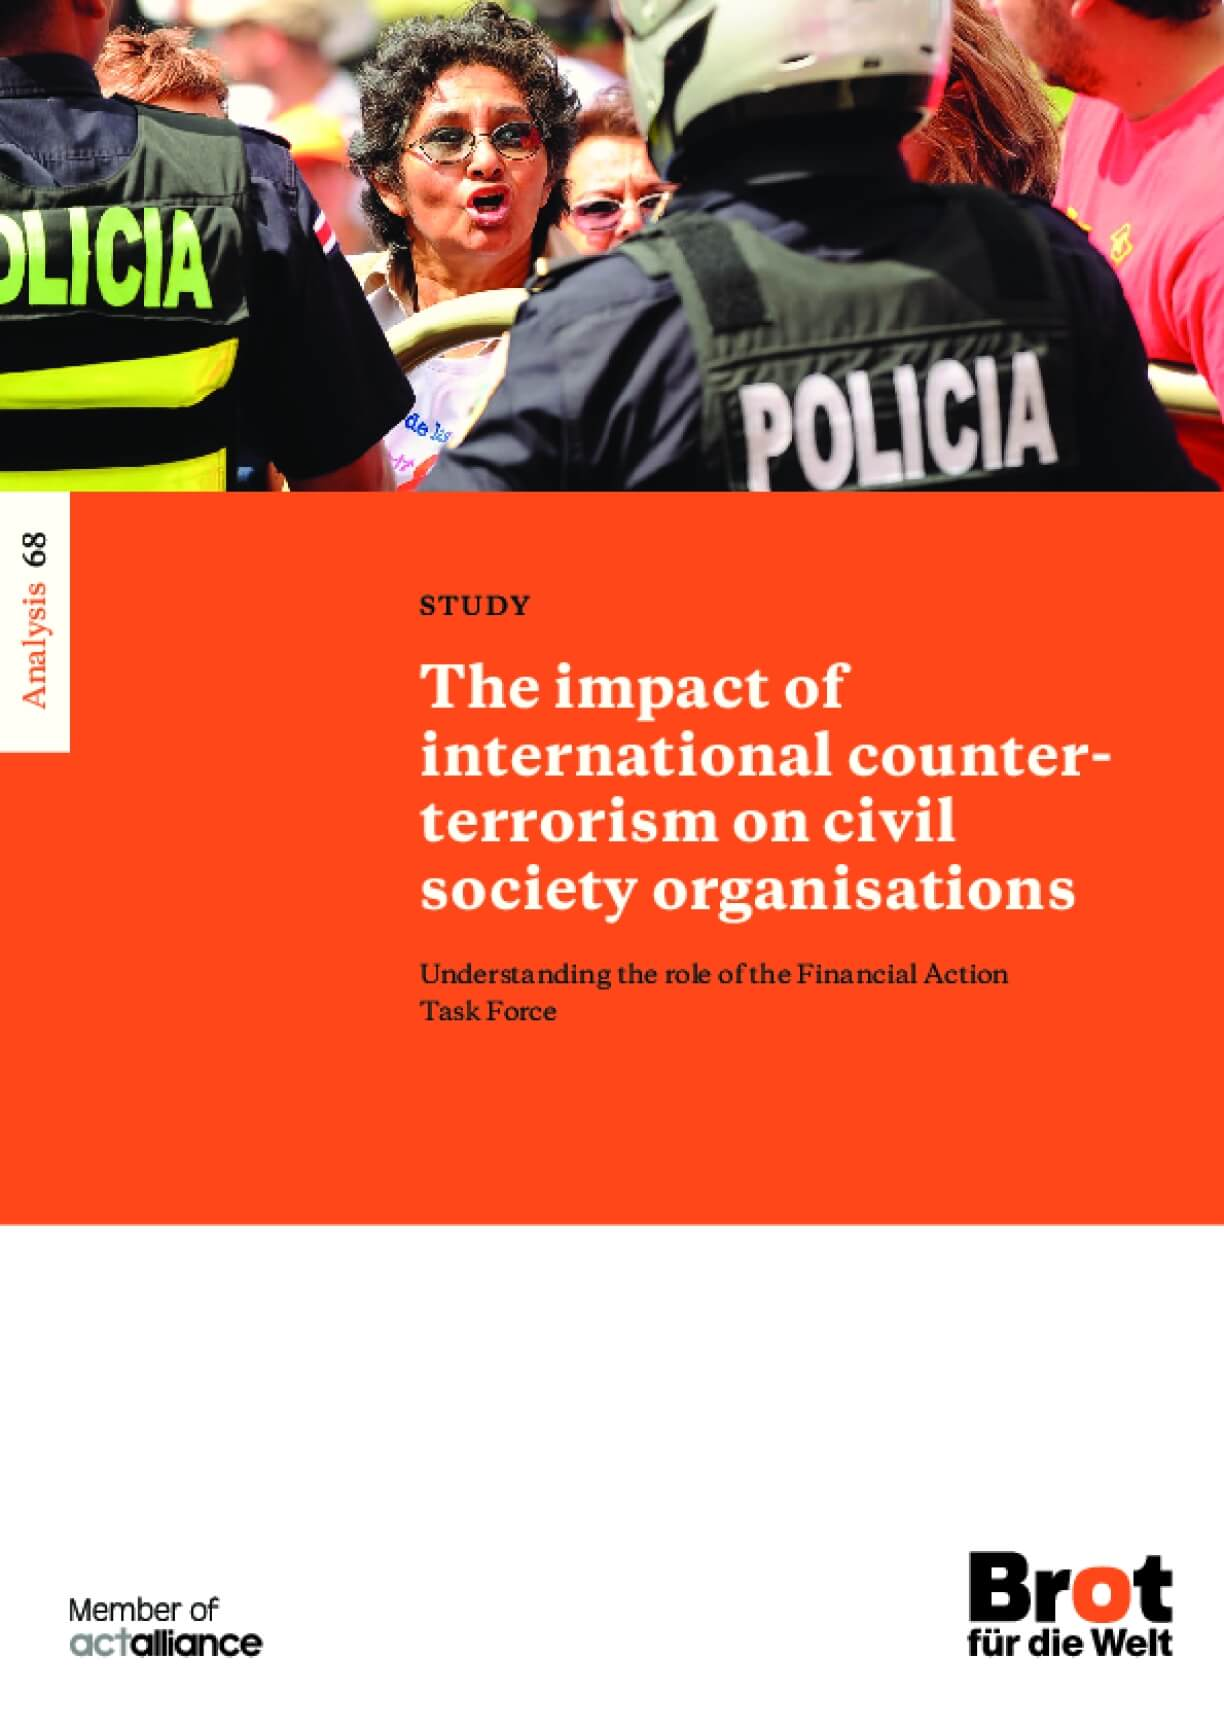 The Impact of International Counter-terrorism on Civil Society Organisations: Understanding the Role of the Financial Action Task Force